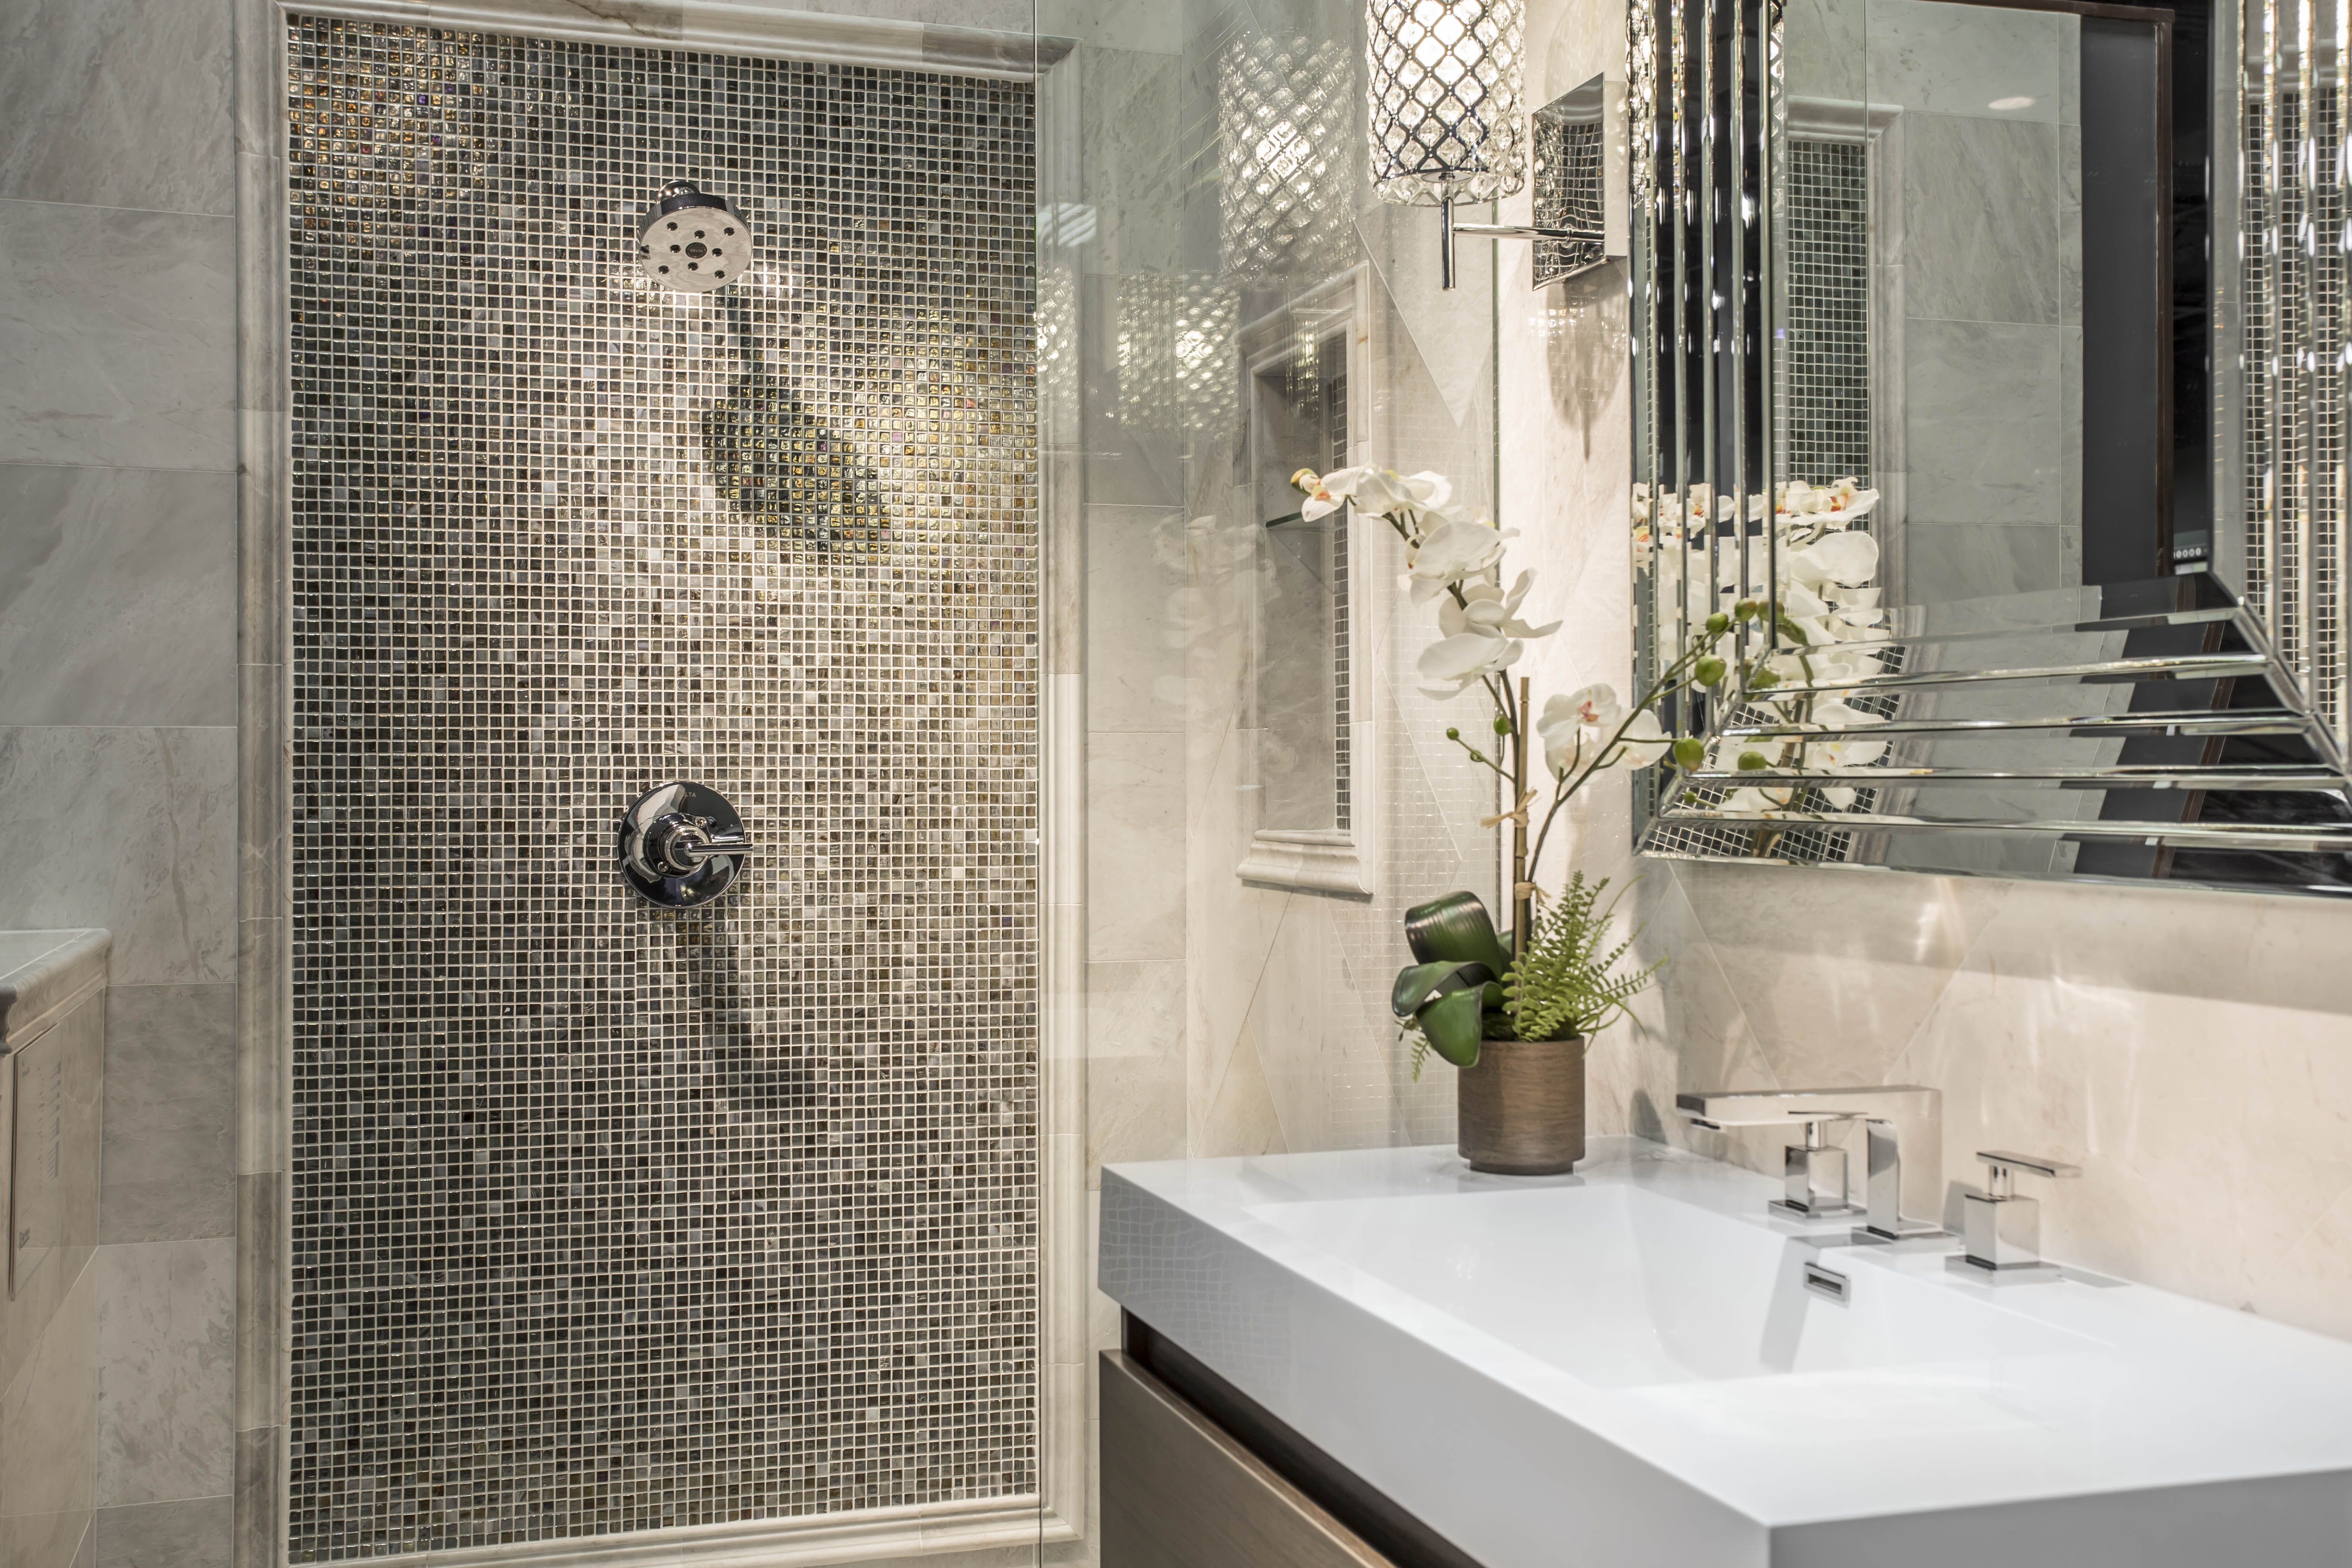 Marble Finishing Pieces Frame The Glass Mosaic Shower Feature One